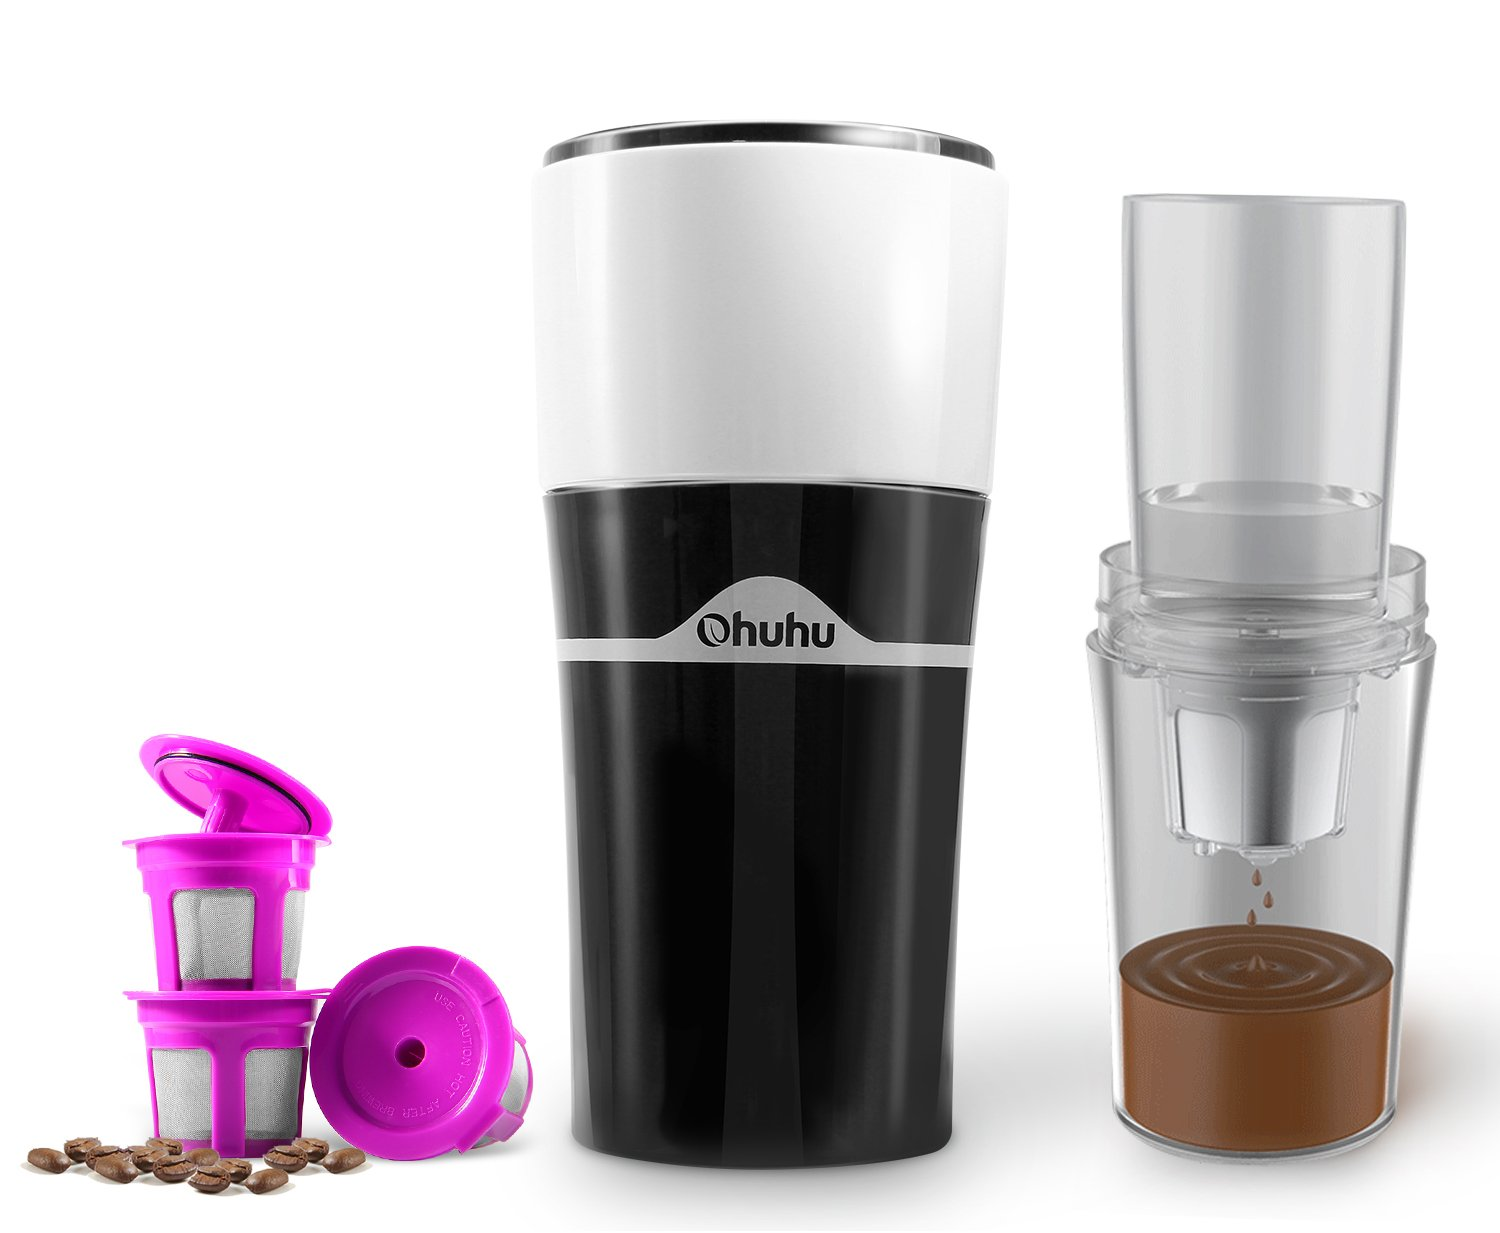 Coffee Dripper, Ohuhu 2-In-1 Portable Drip Coffee Brewer and Travel Mug, Compatible with K CUP Capsules & Ground Coffee Pour Over Coffee Brewer